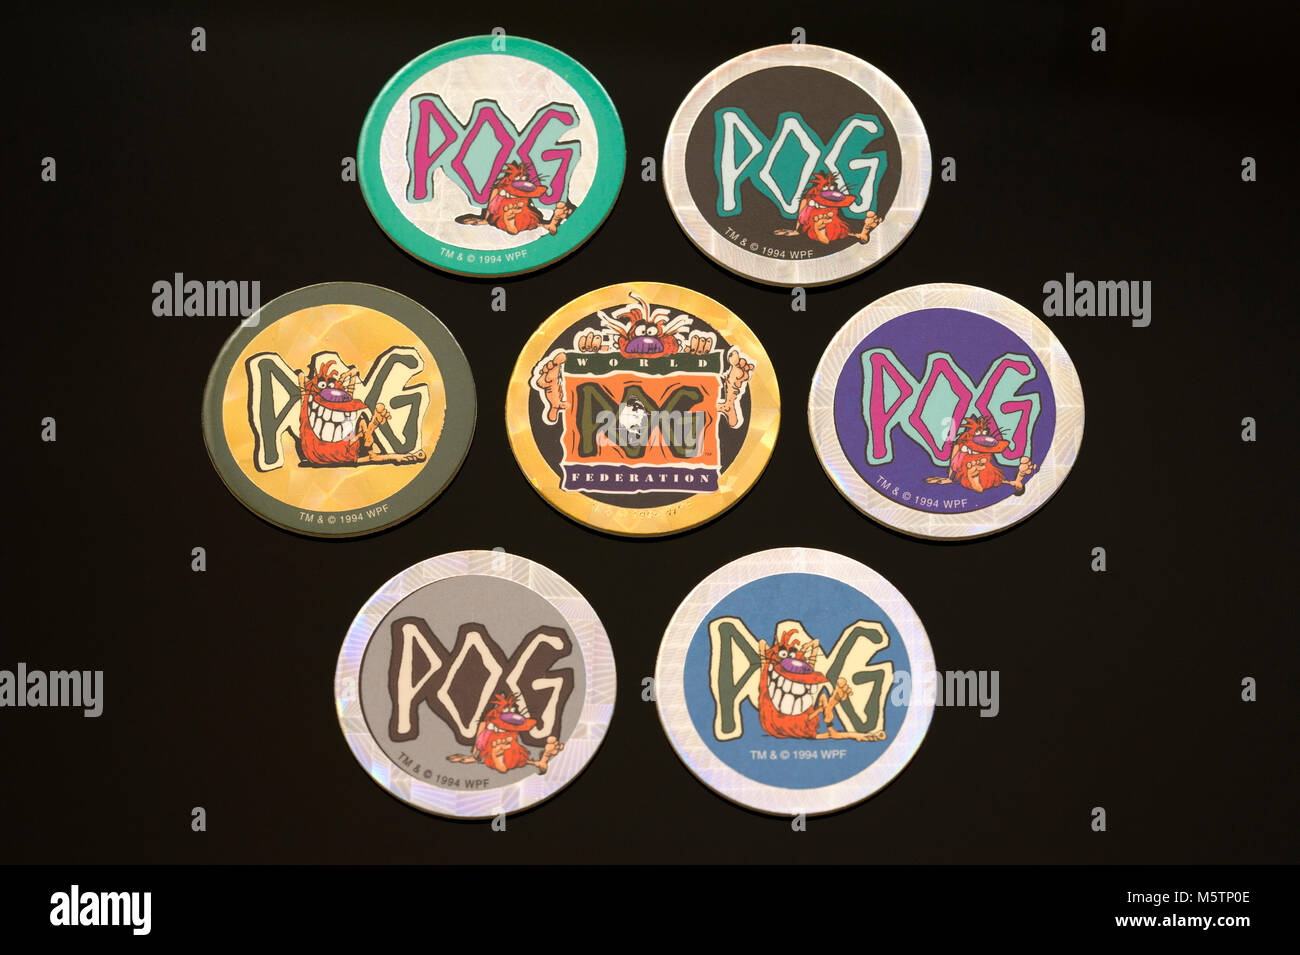 Pogs (Milk cap) collectables which was a popular children's game in the 1990's - Stock Image